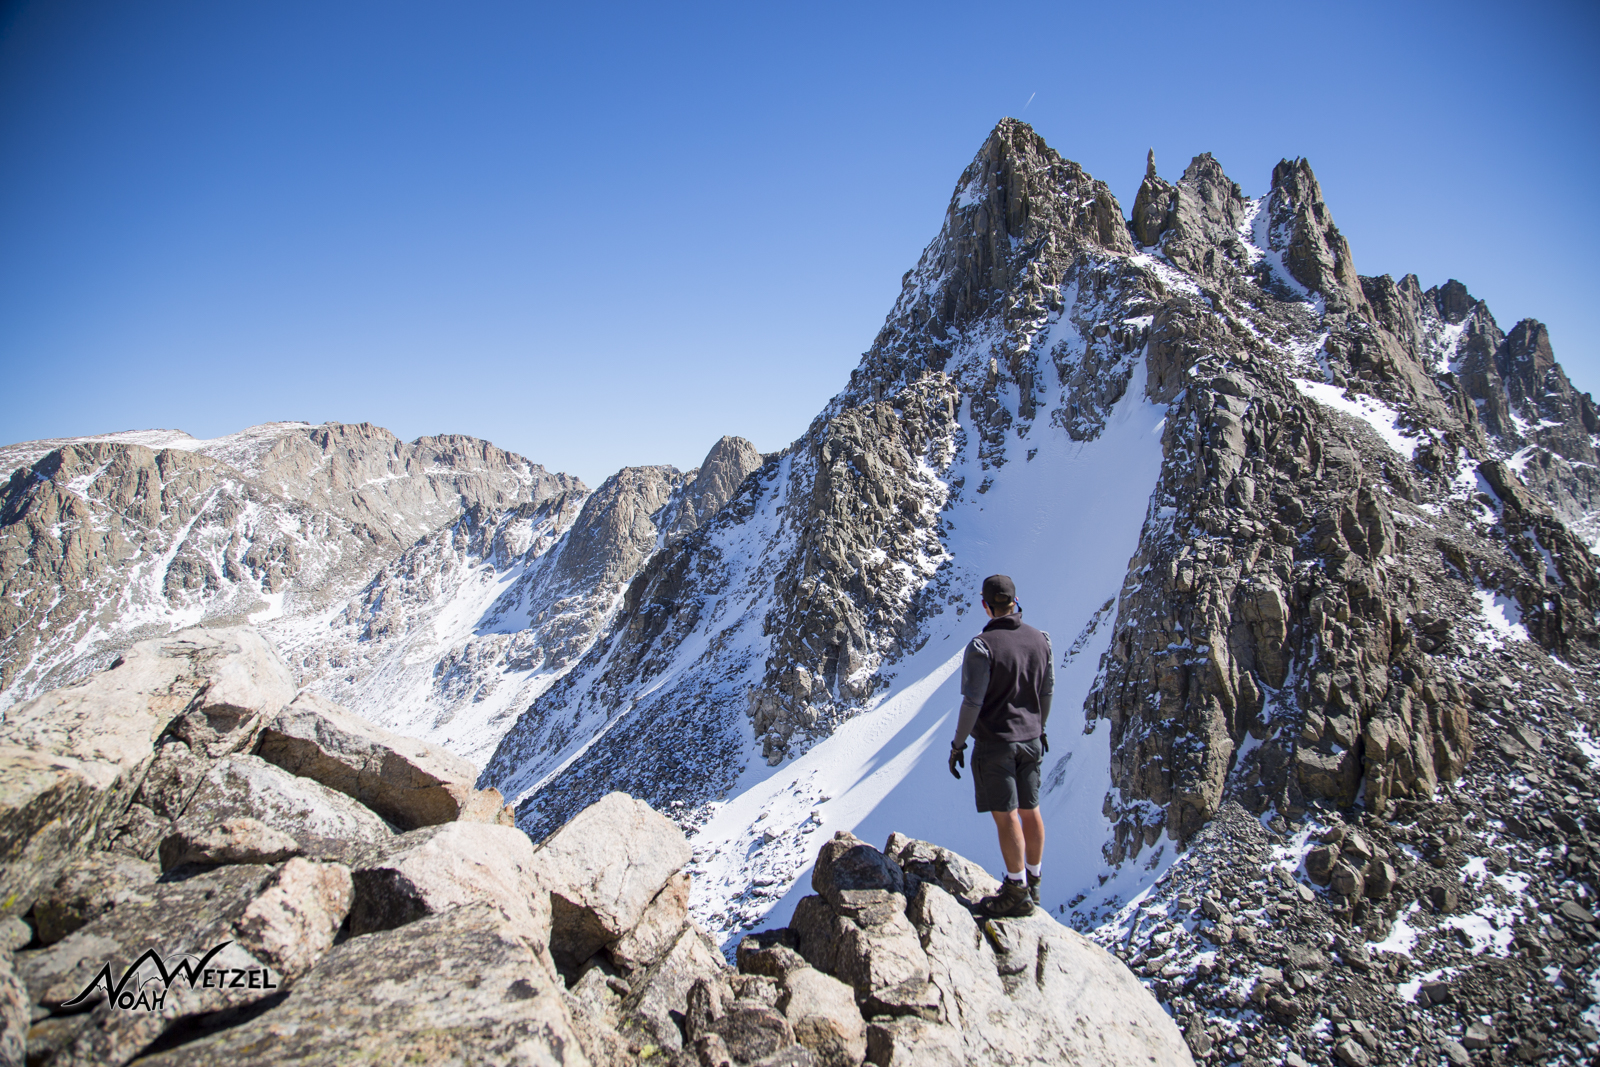 My brother Ben Wetzel soaking in the views at Indian Pass. Wind River Range. Wyoming